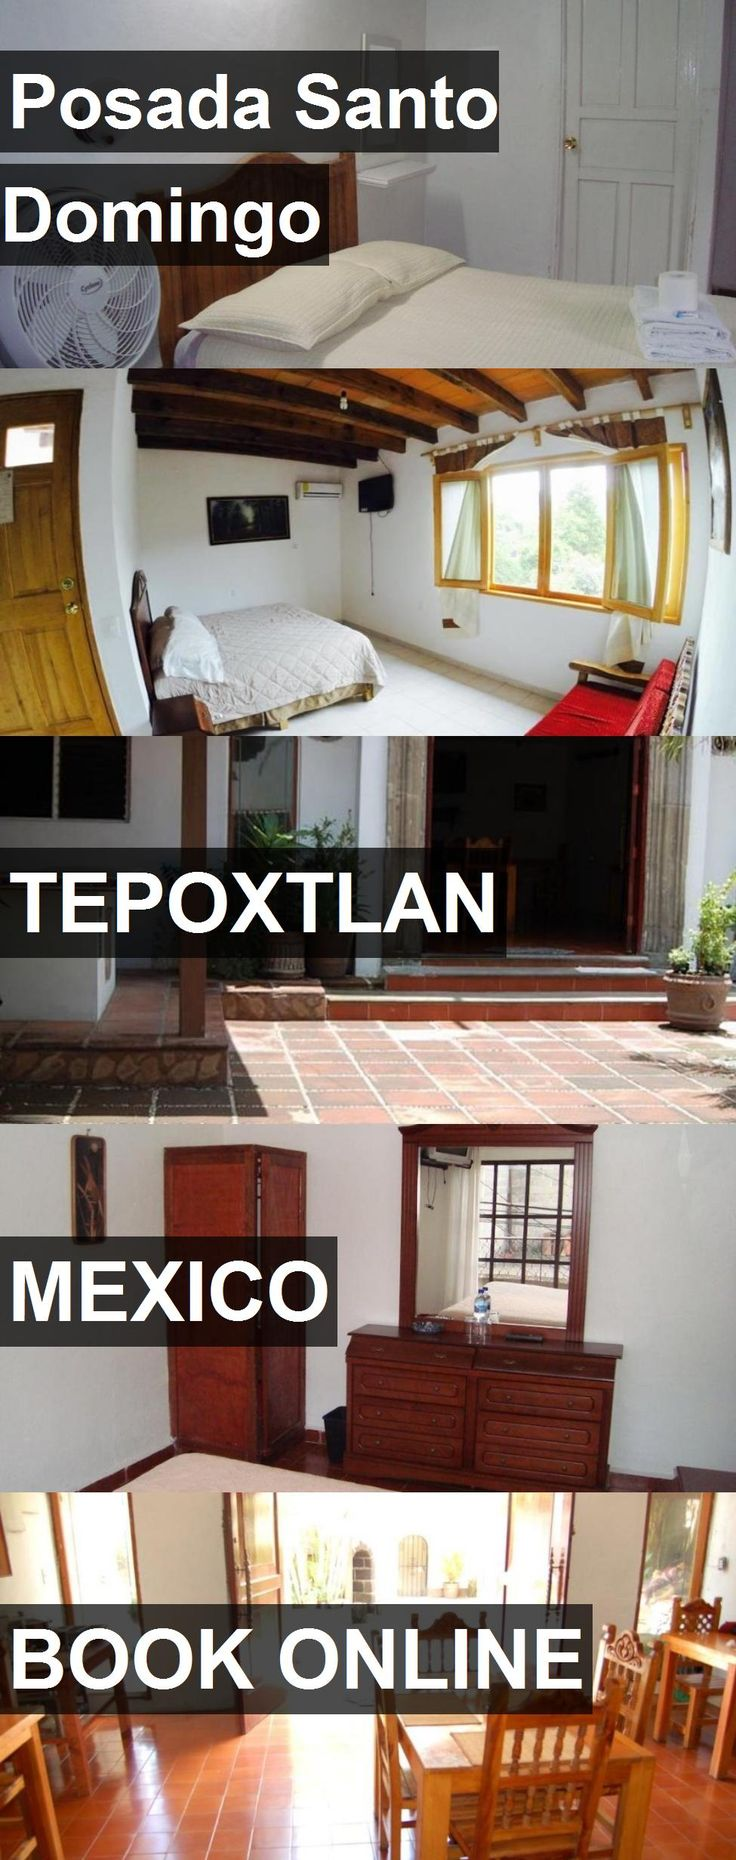 Hotel Posada Santo Domingo in Tepoxtlan, Mexico. For more information, photos, reviews and best prices please follow the link. #Mexico #Tepoxtlan #travel #vacation #hotel